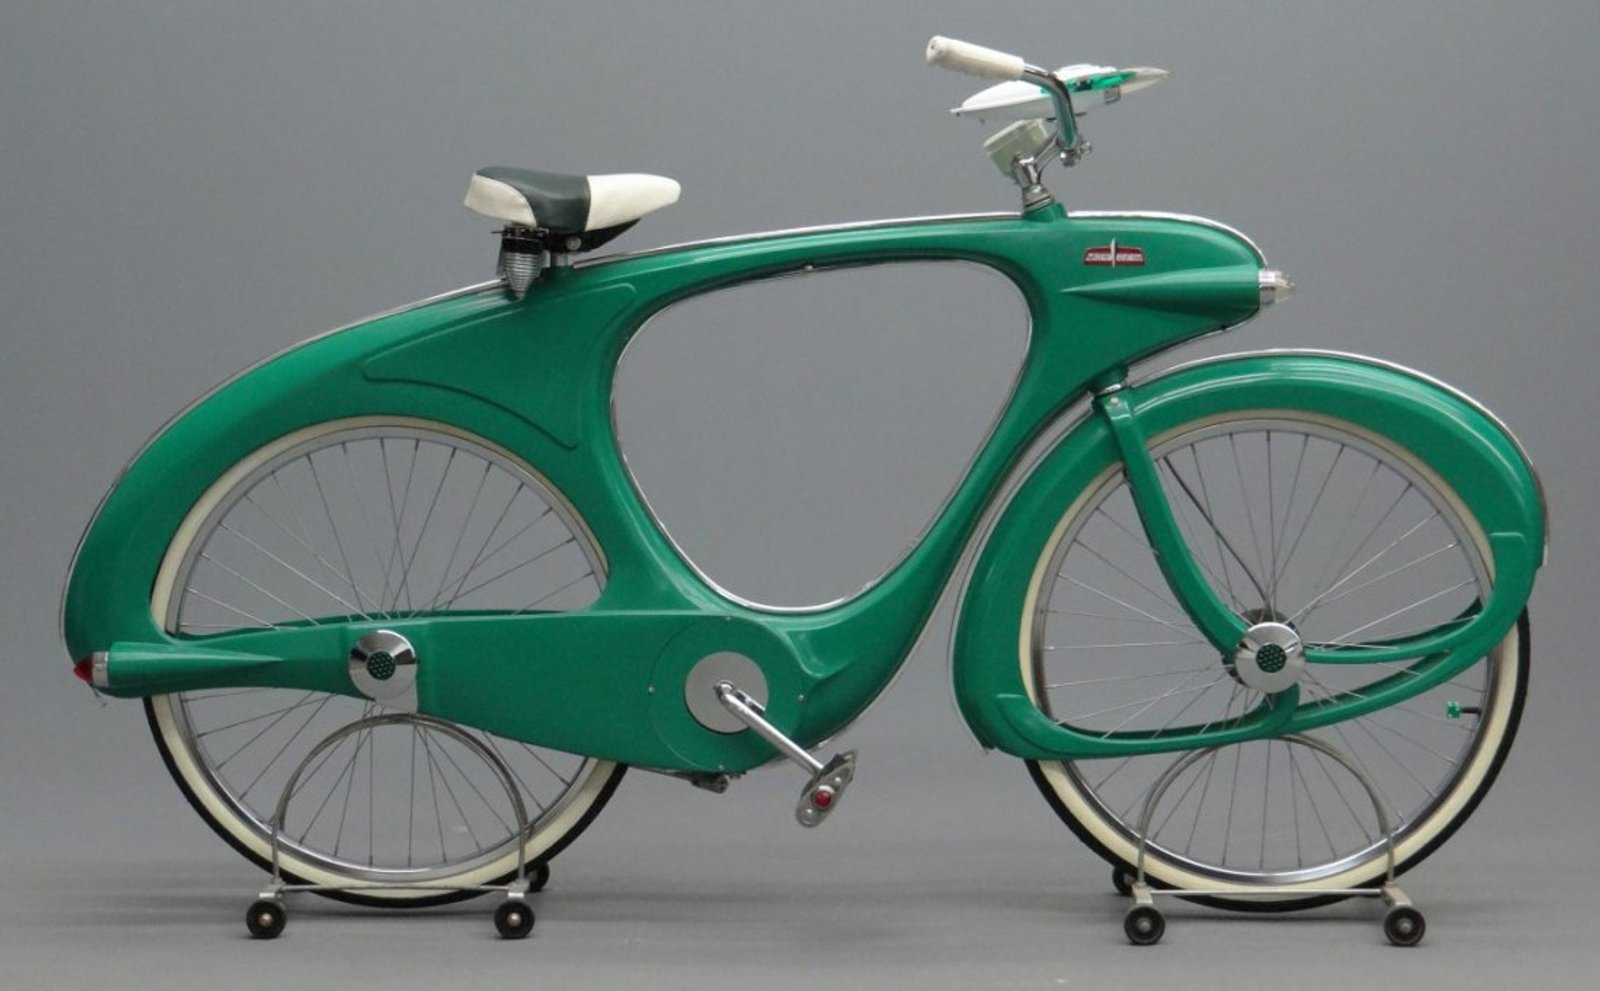 Bicycles: combining form and function since 1817